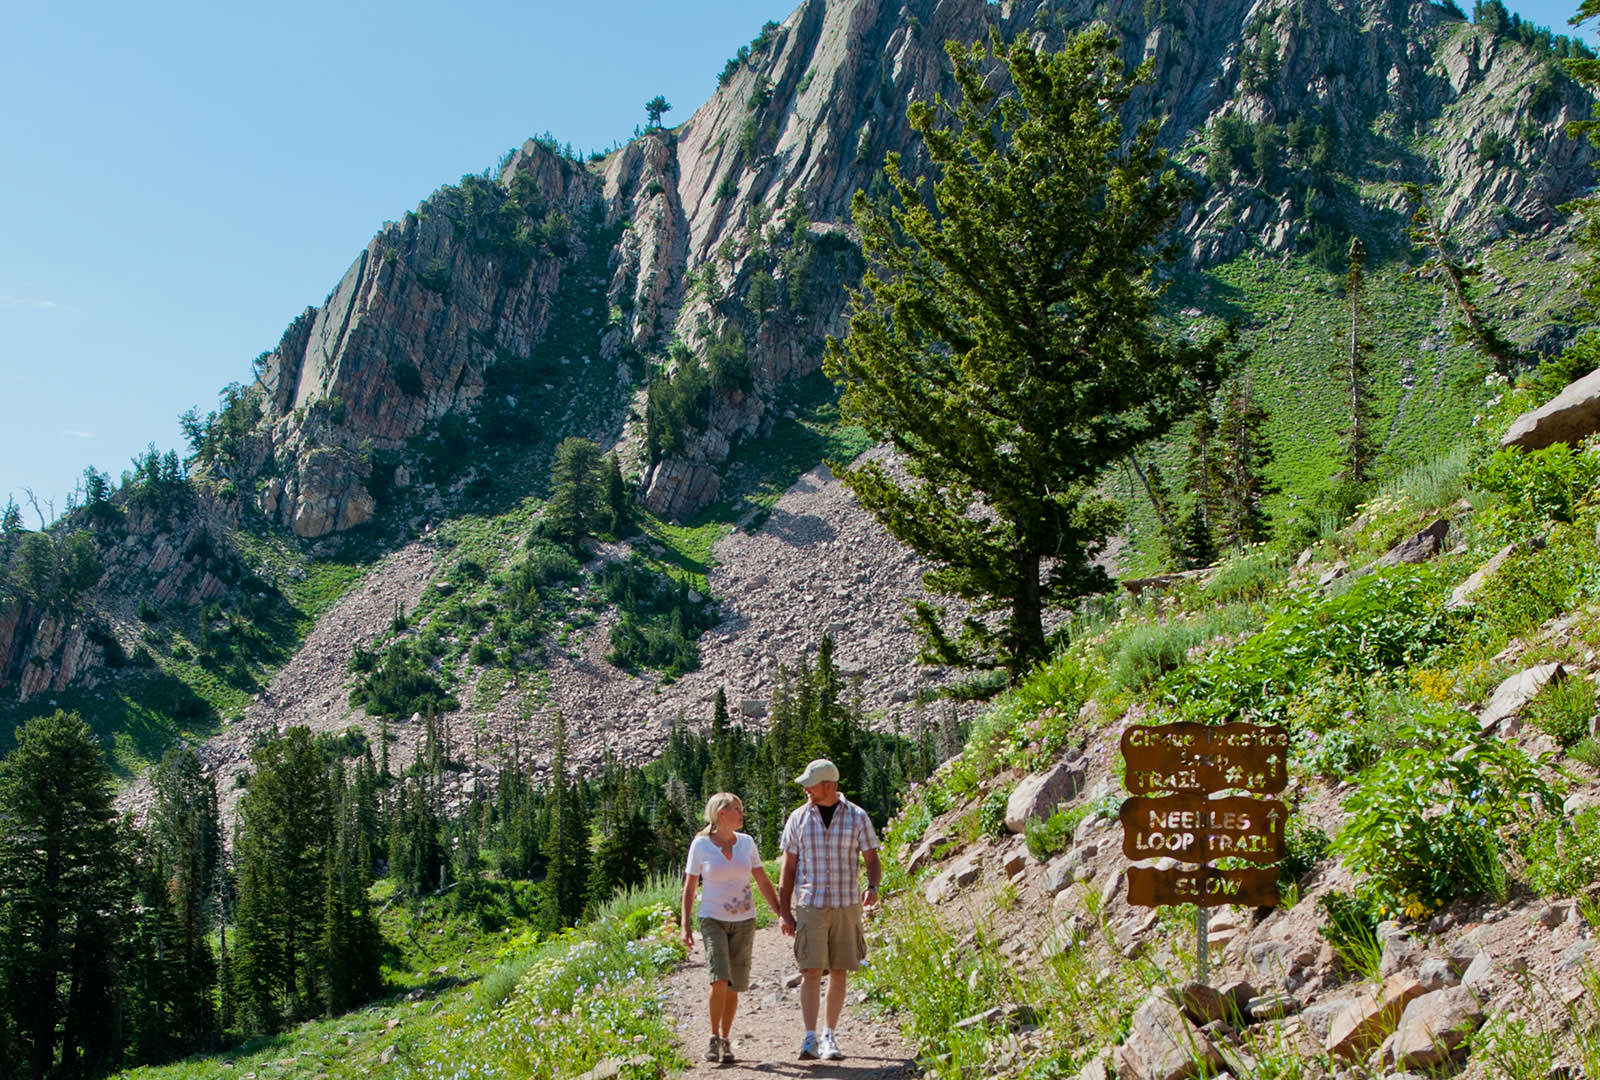 Man and woman hiking in the mountains at Snowbasin